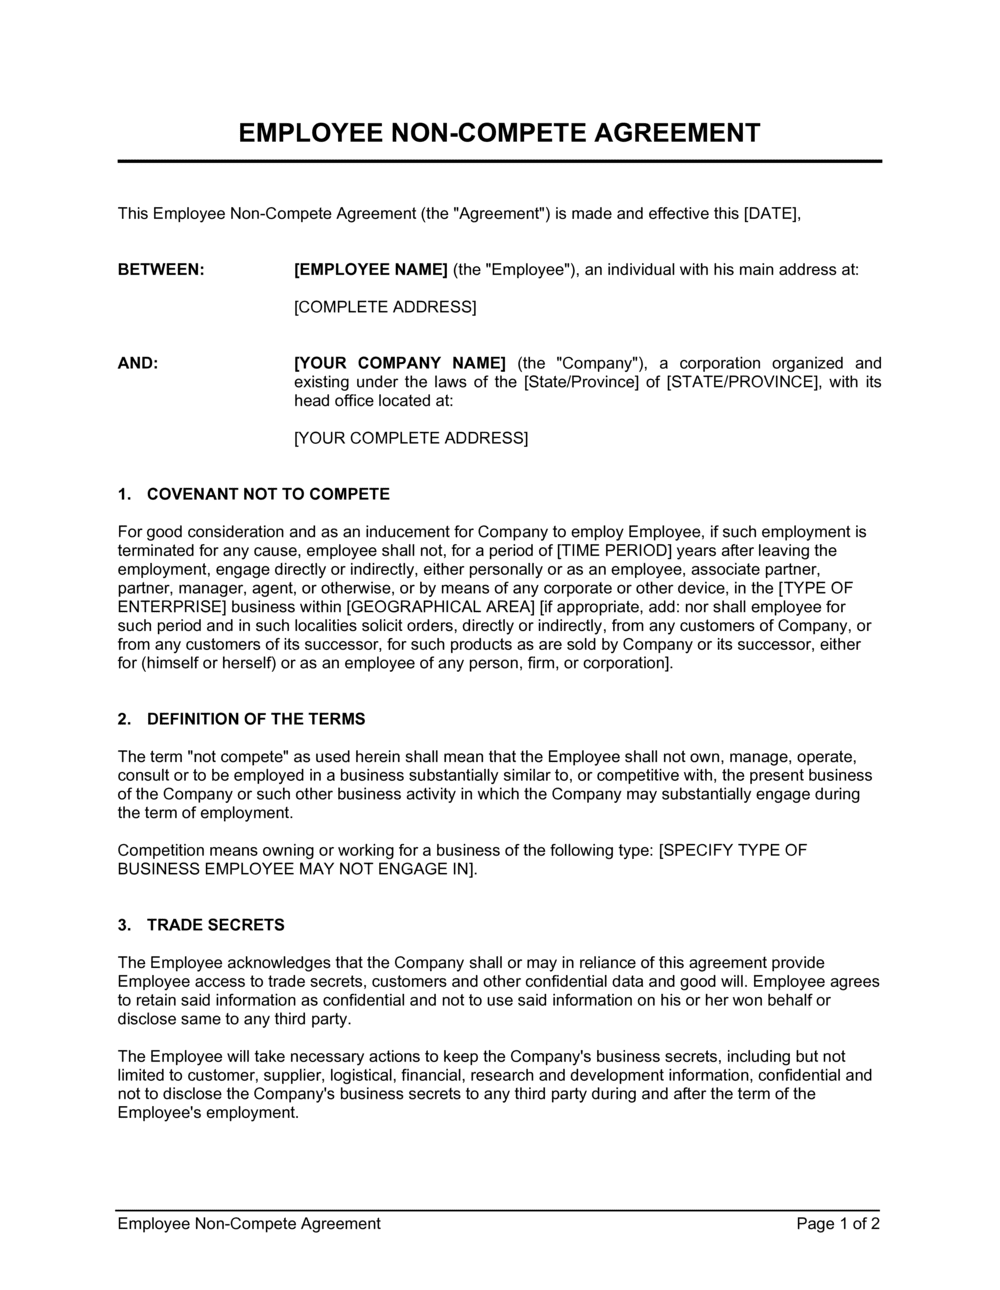 Business-in-a-Box's Employee Non-Compete Agreement Template